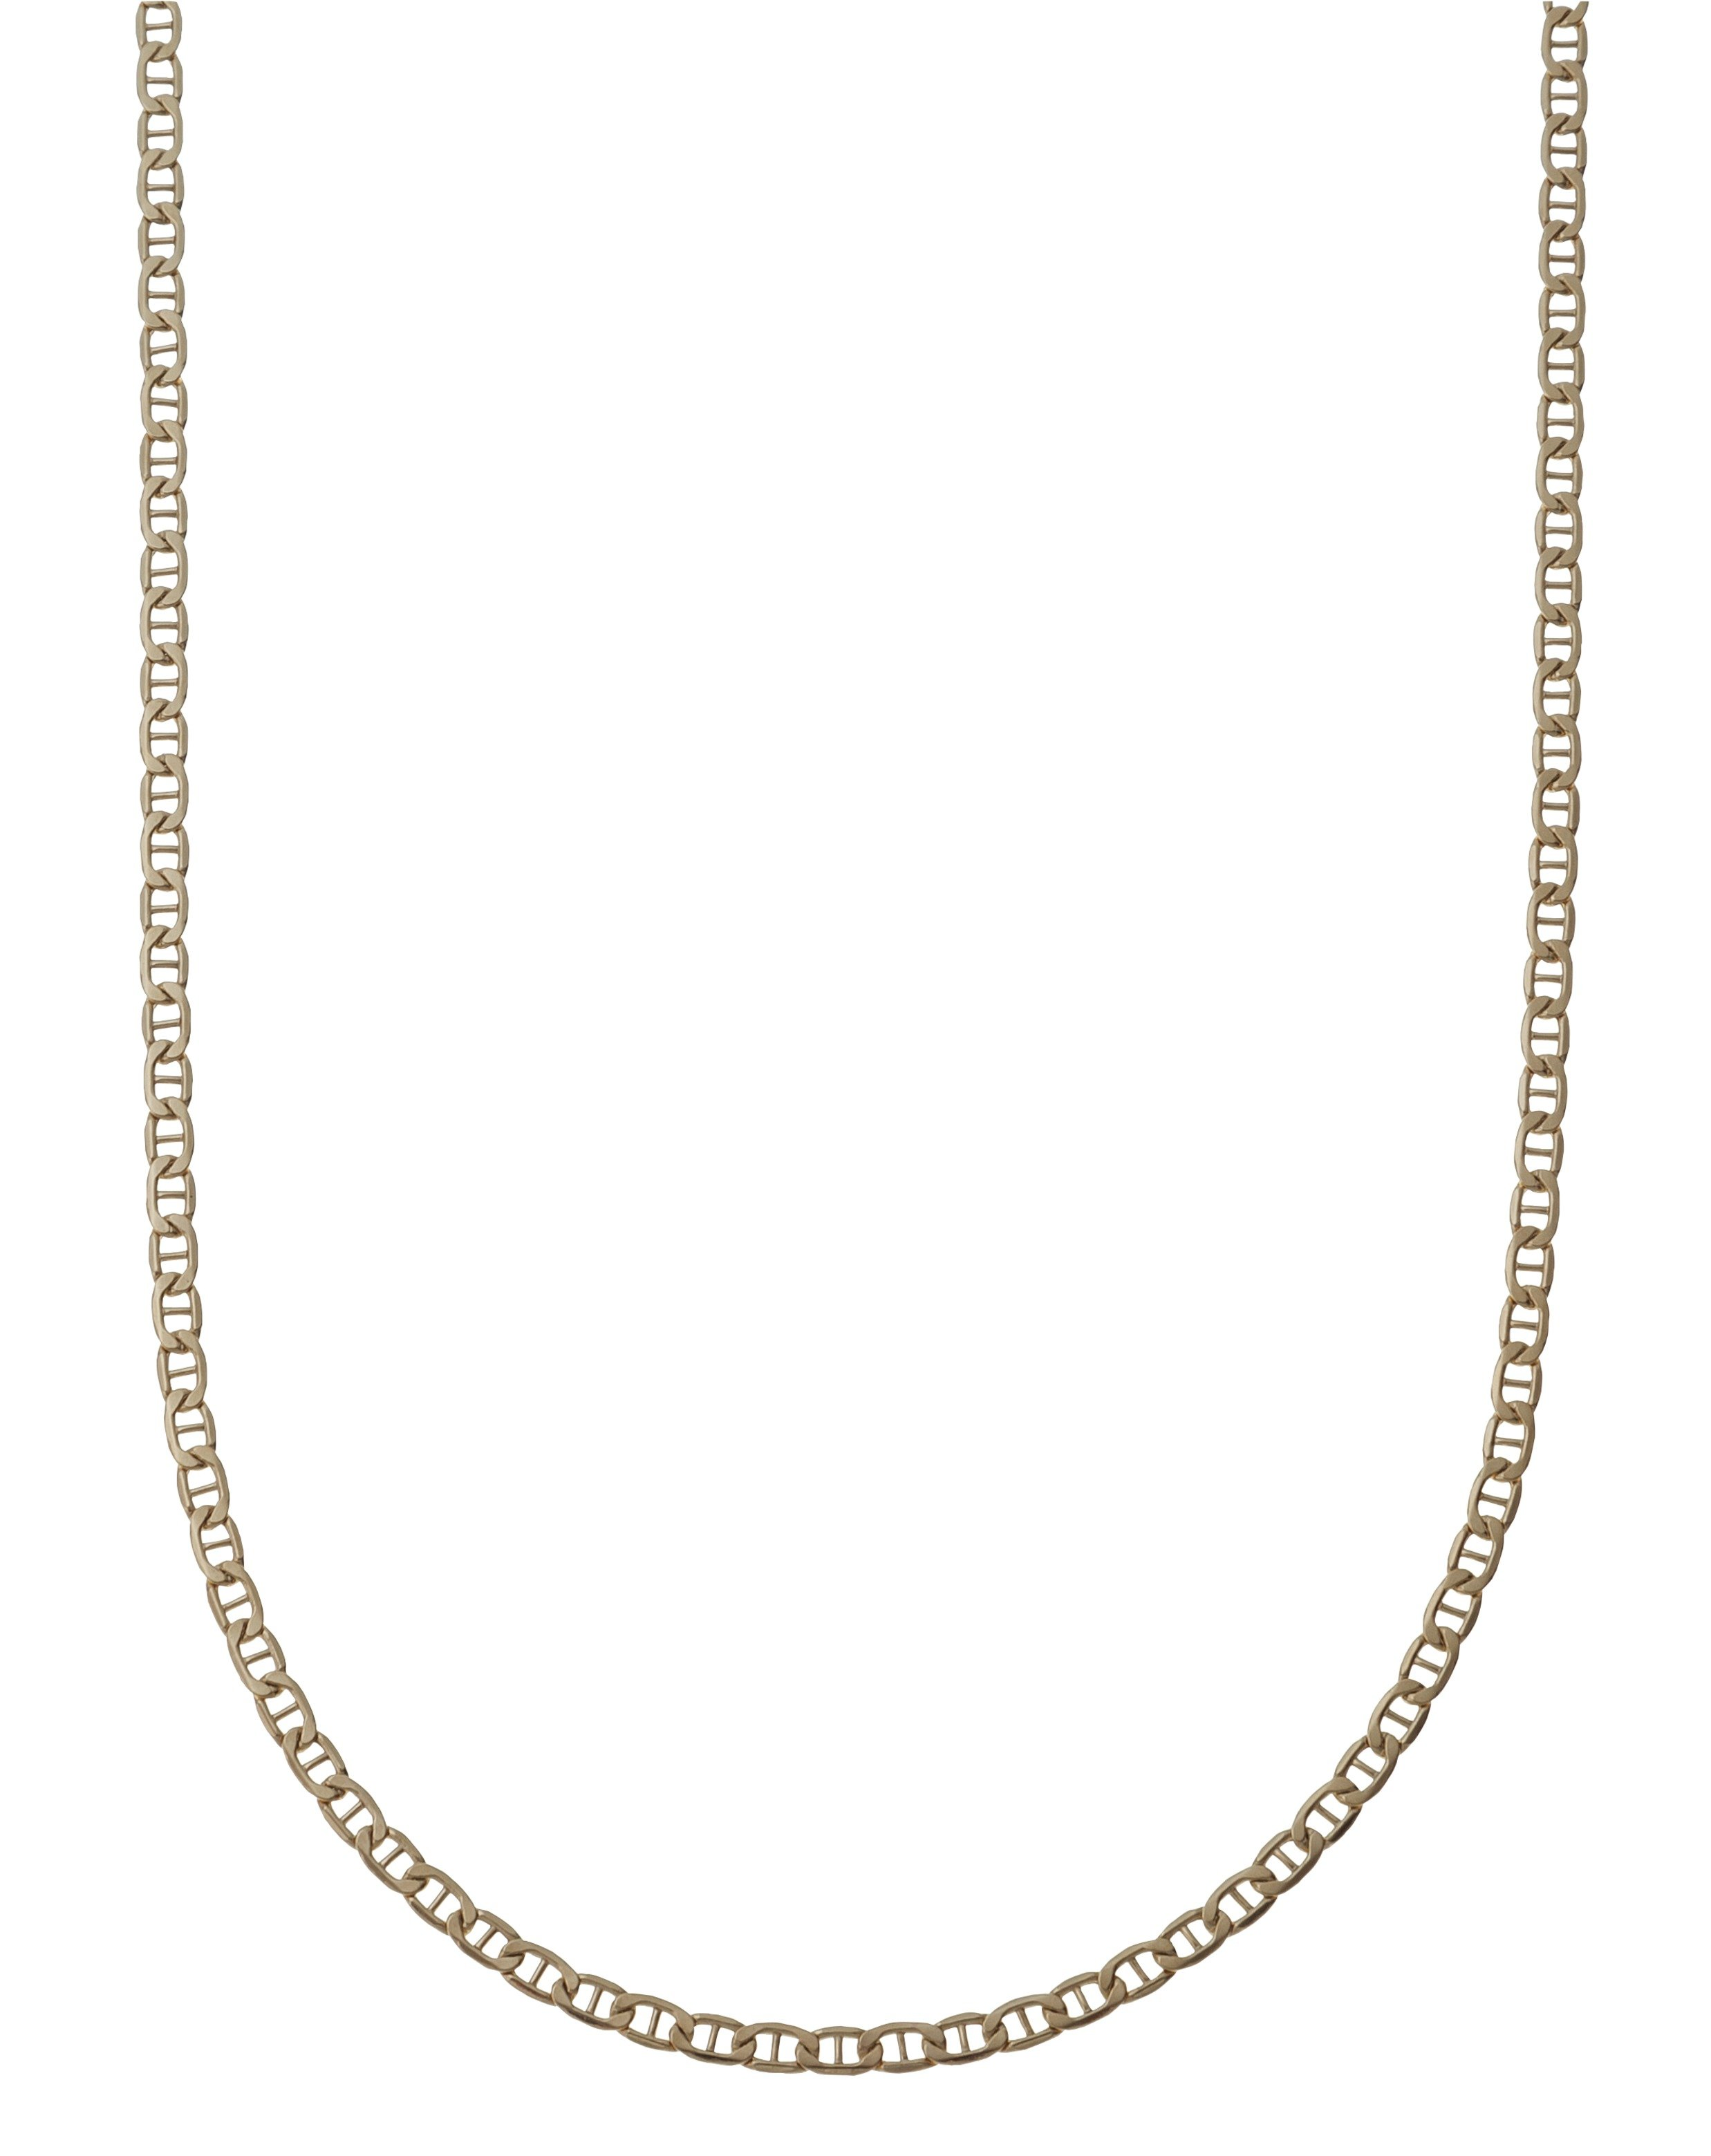 9ct - Gold - Anchor Chain